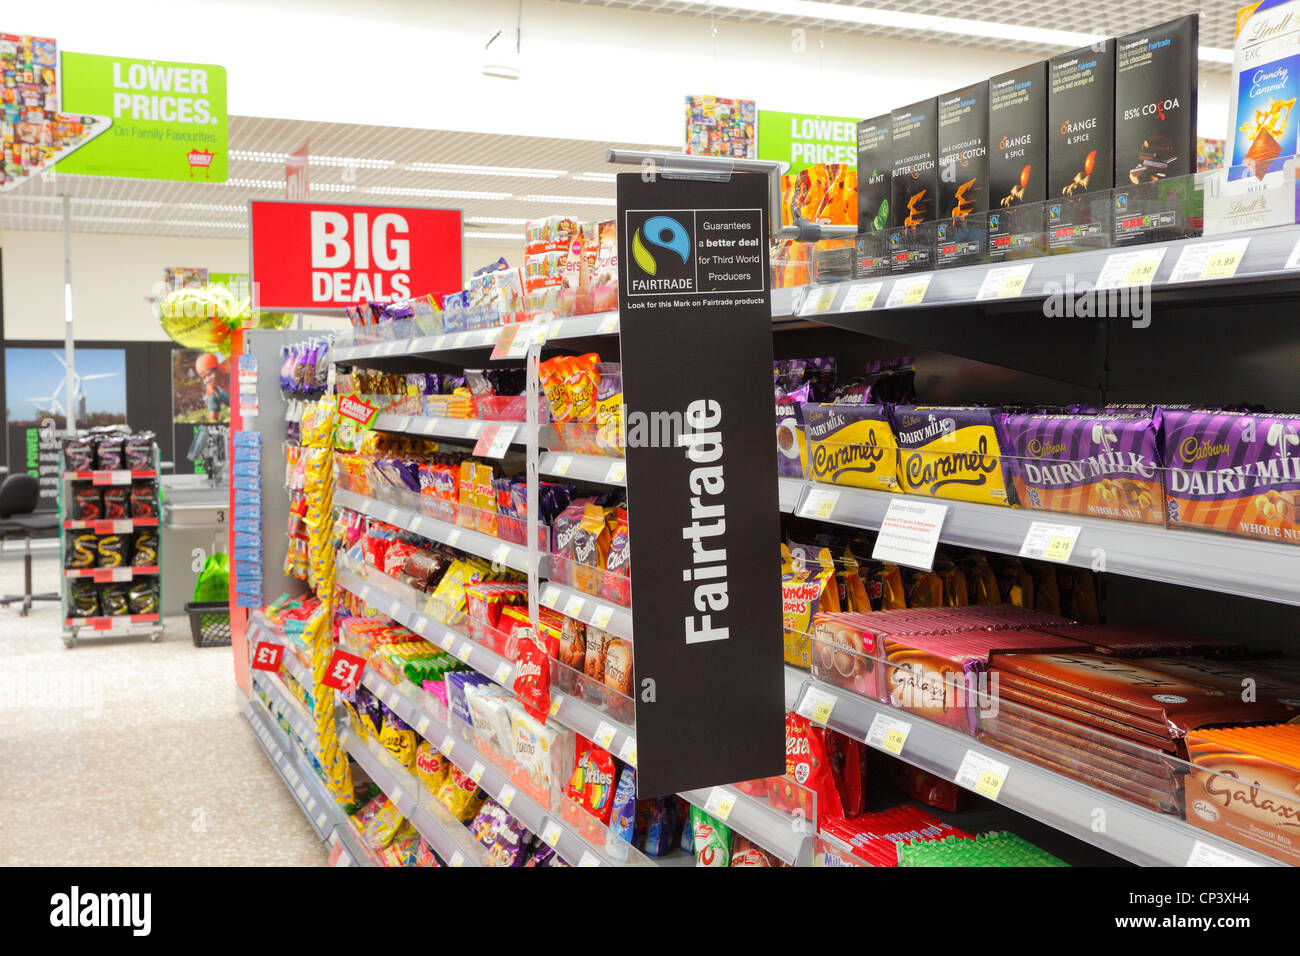 Fairtrade Chocolate Stock Photos & Fairtrade Chocolate Stock ...